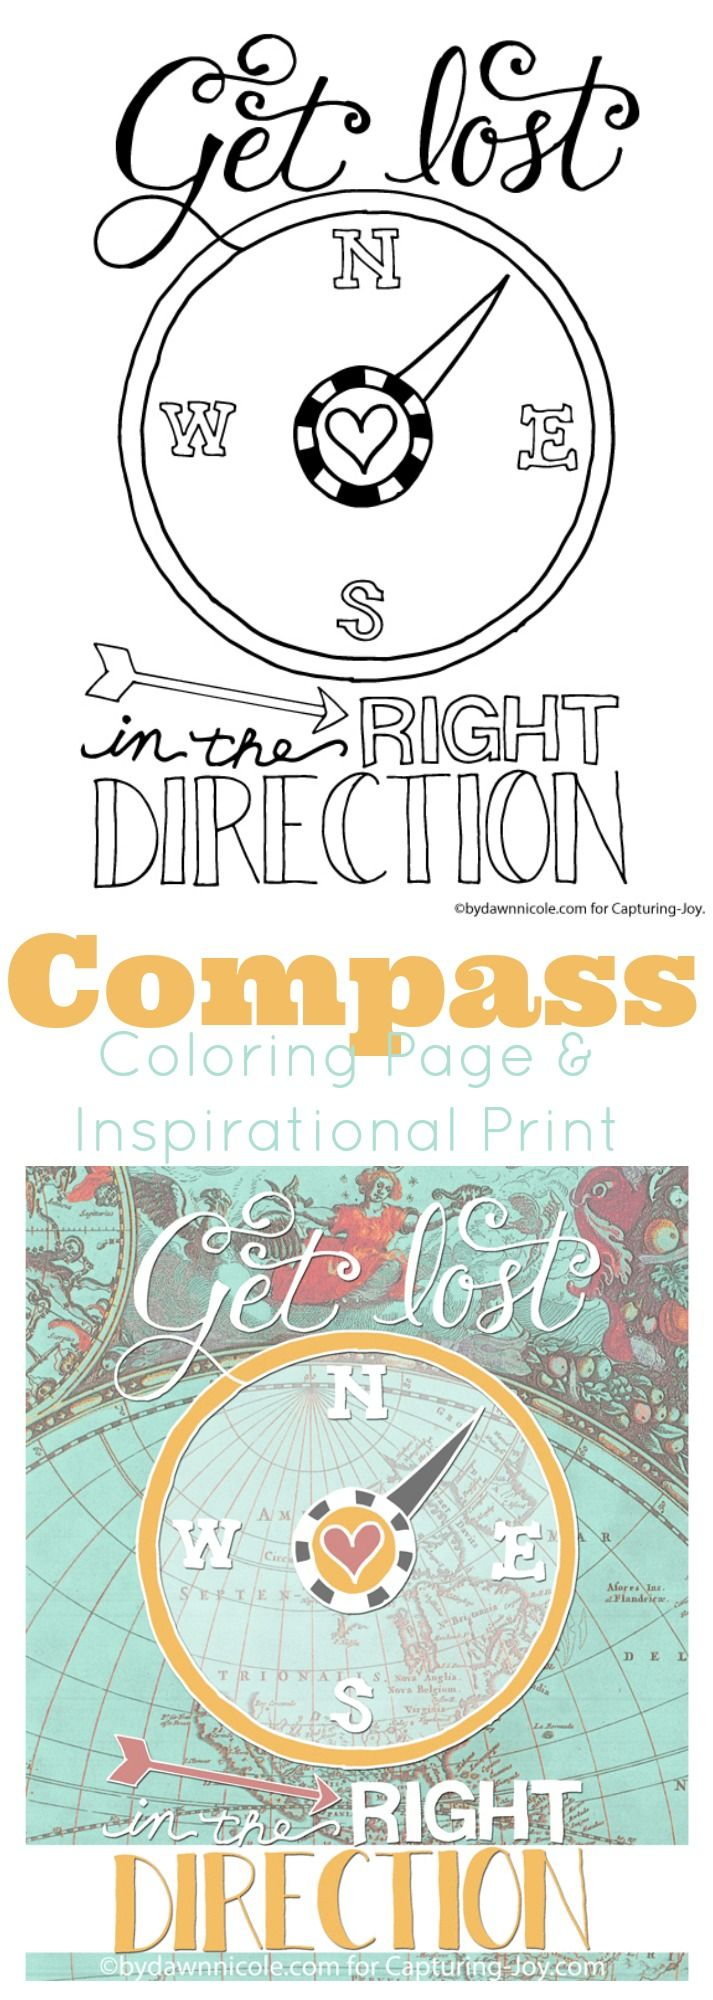 Compass coloring page and inspirational print the kids will love to color.